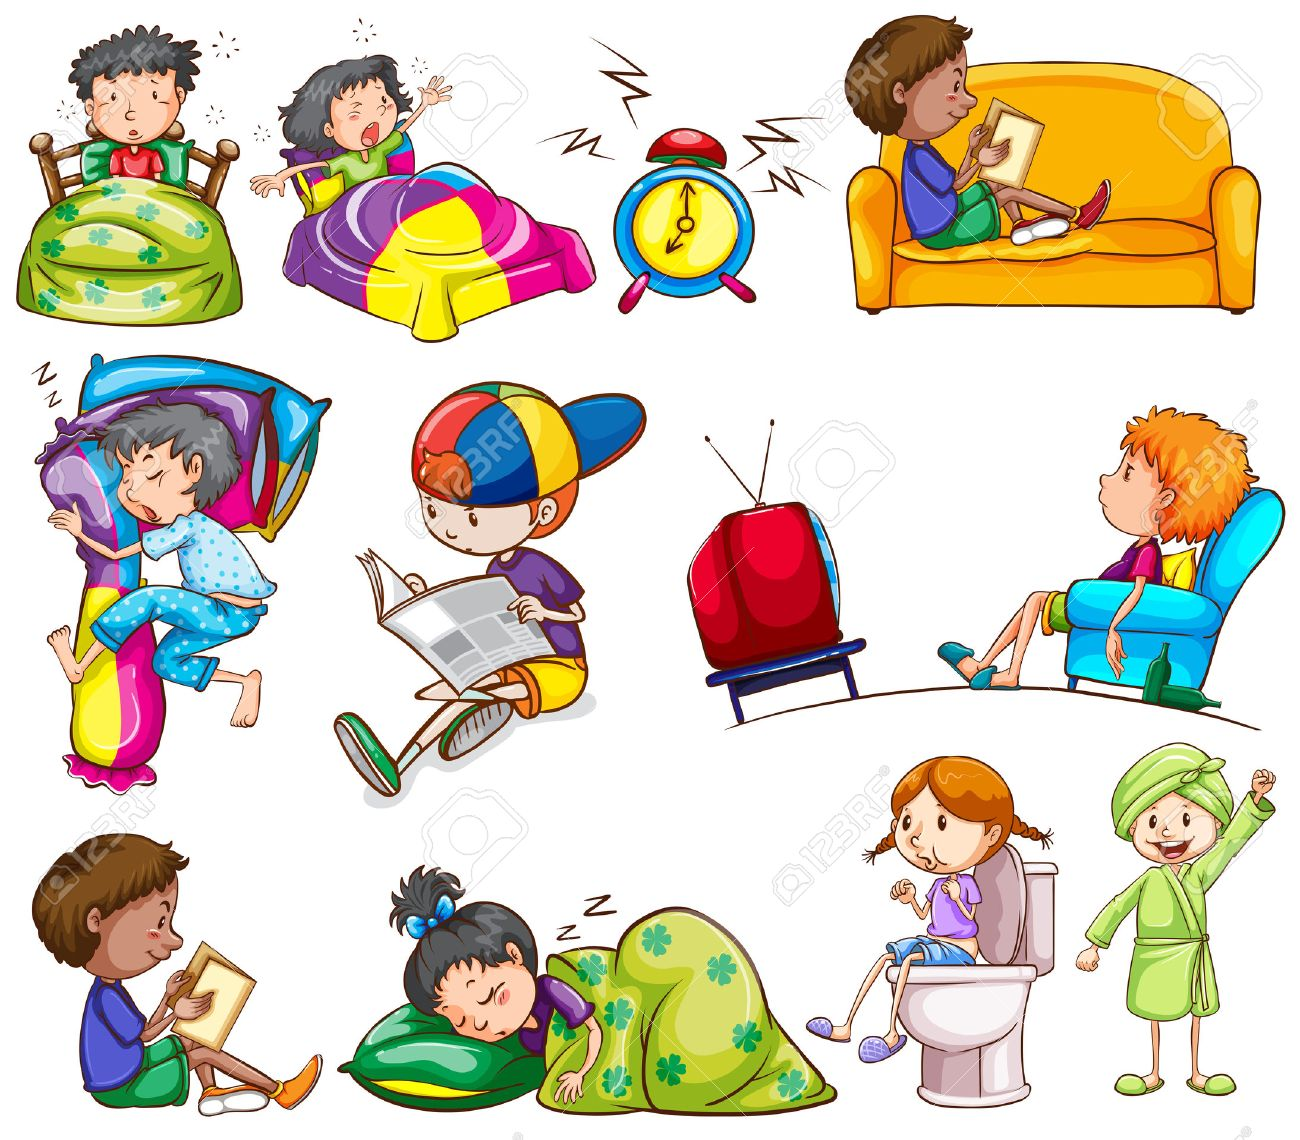 Activities clipart weekend. Drawinging free download best